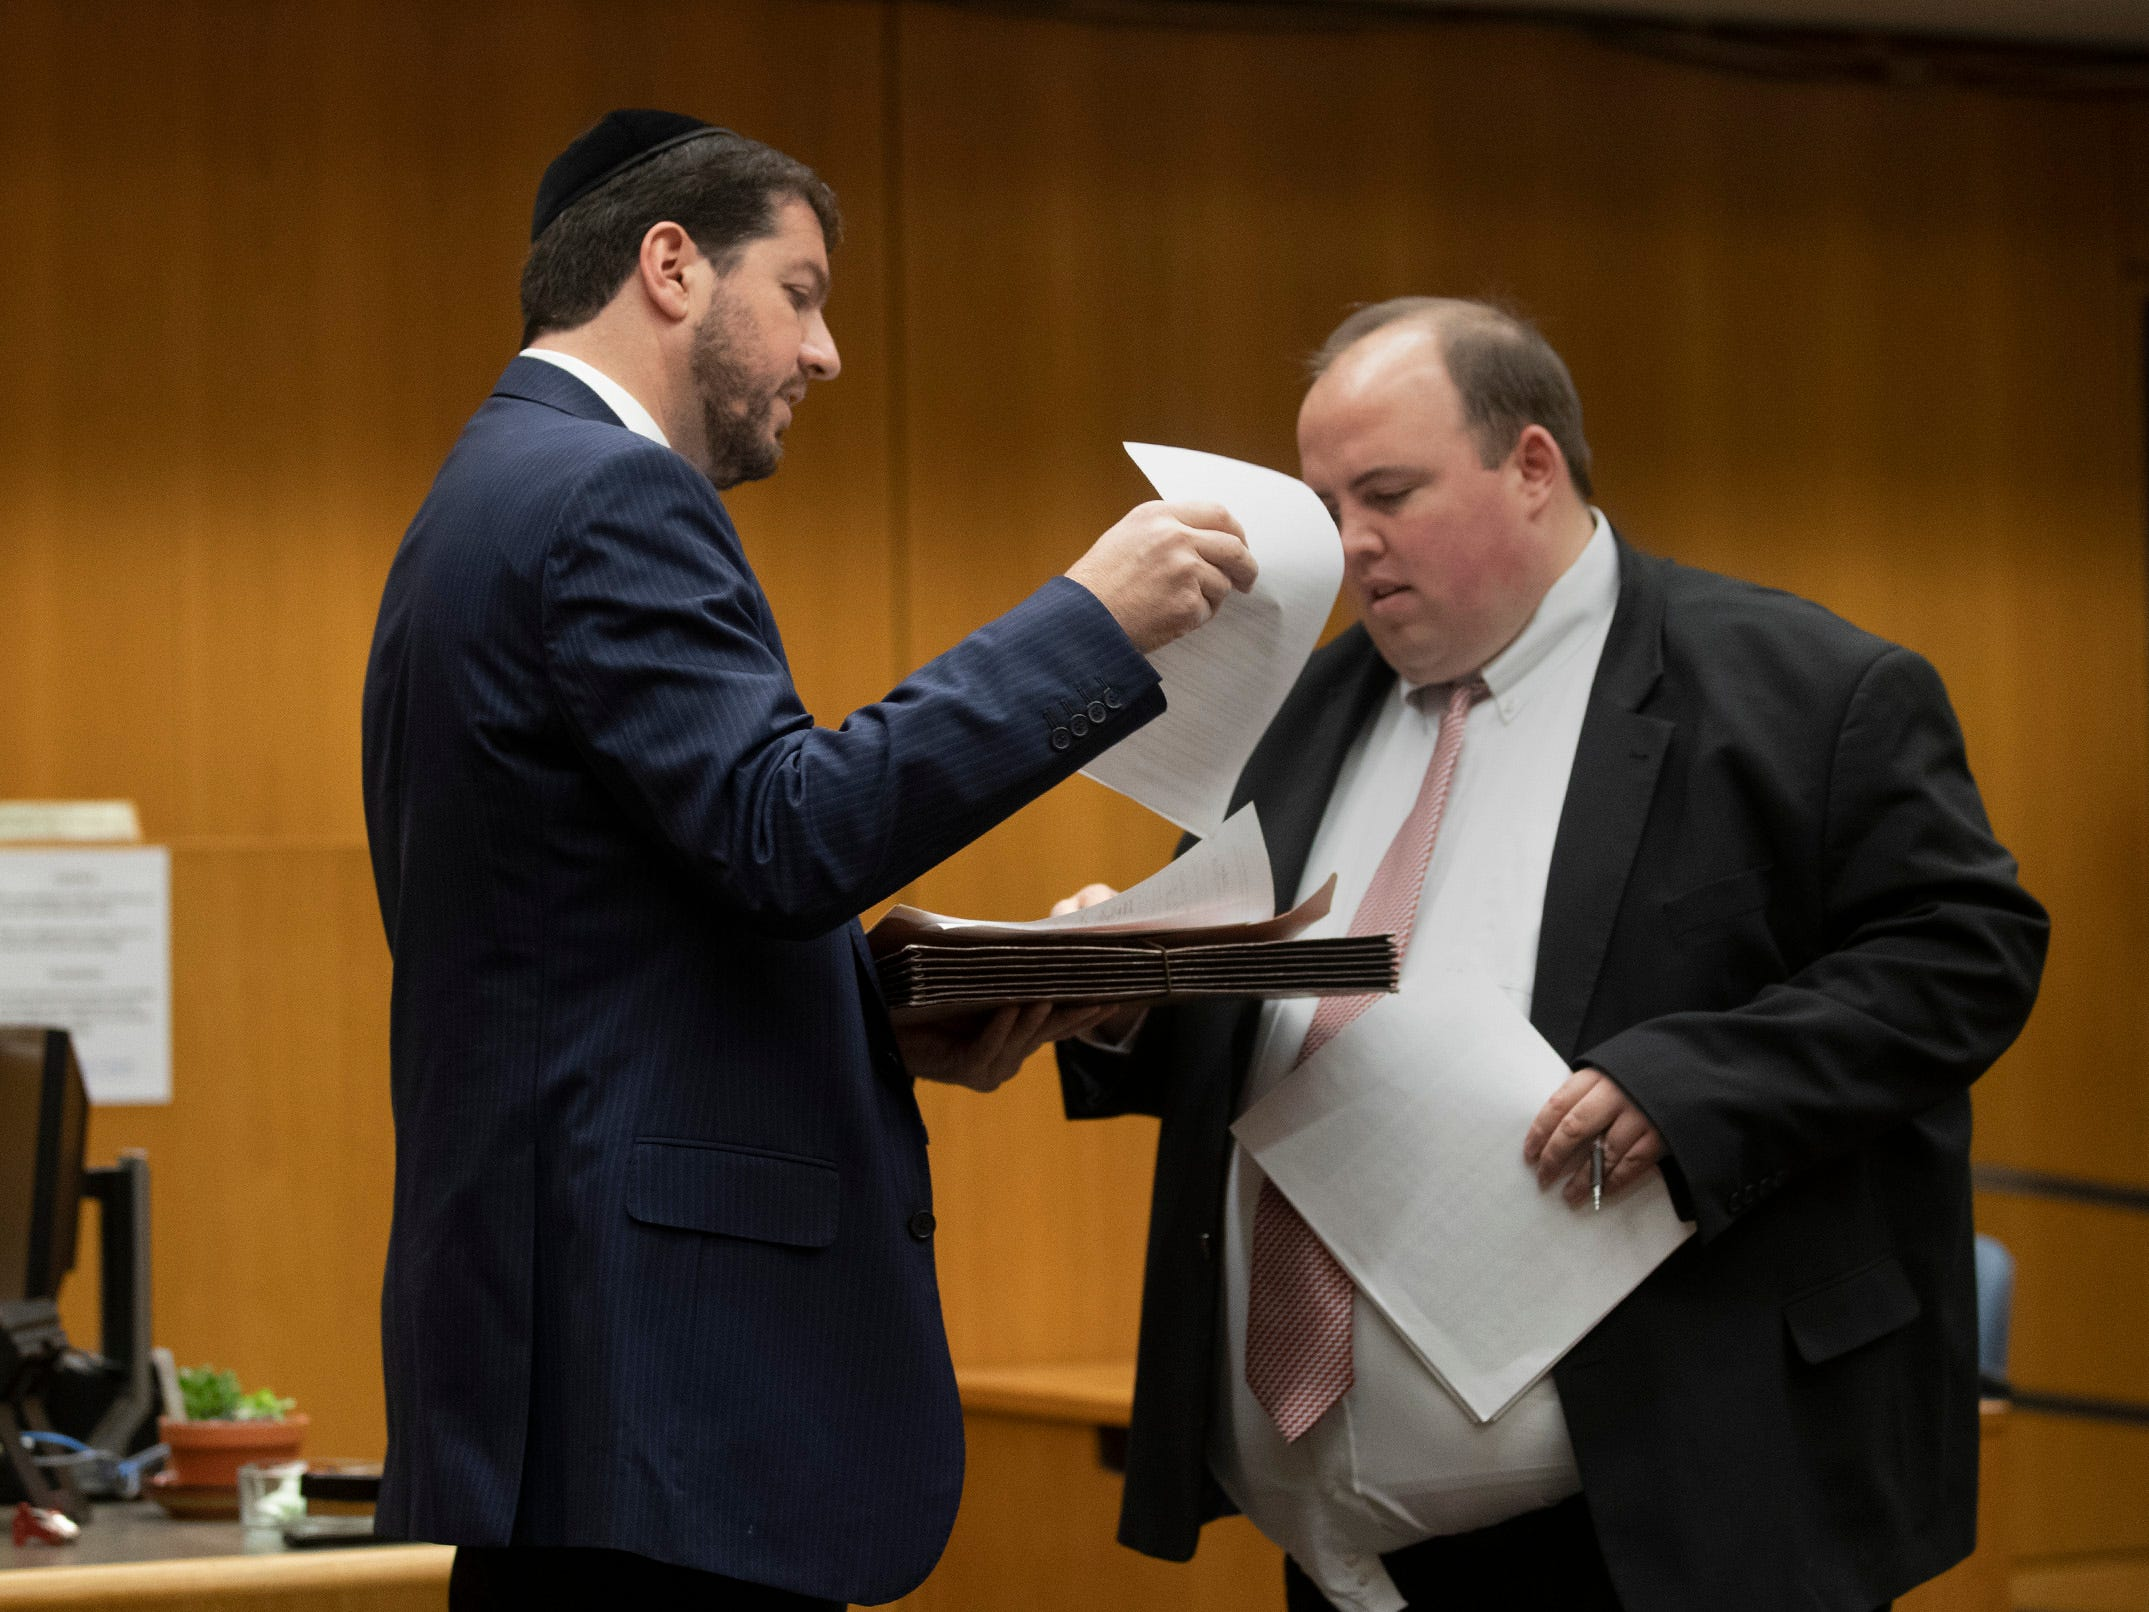 Defense Lawyer Yosef Jacobovitch and Assistant Prosecutor Christopher Heisler go over paperwork prior to court. The first four plea deals in the Lakewood Welfare Fraud cases were settled in front of Judge Wendel Daniels in Ocean County Court in Toms River on December 5, 2018. Twenty Six people were arrested in the raids in 2017.